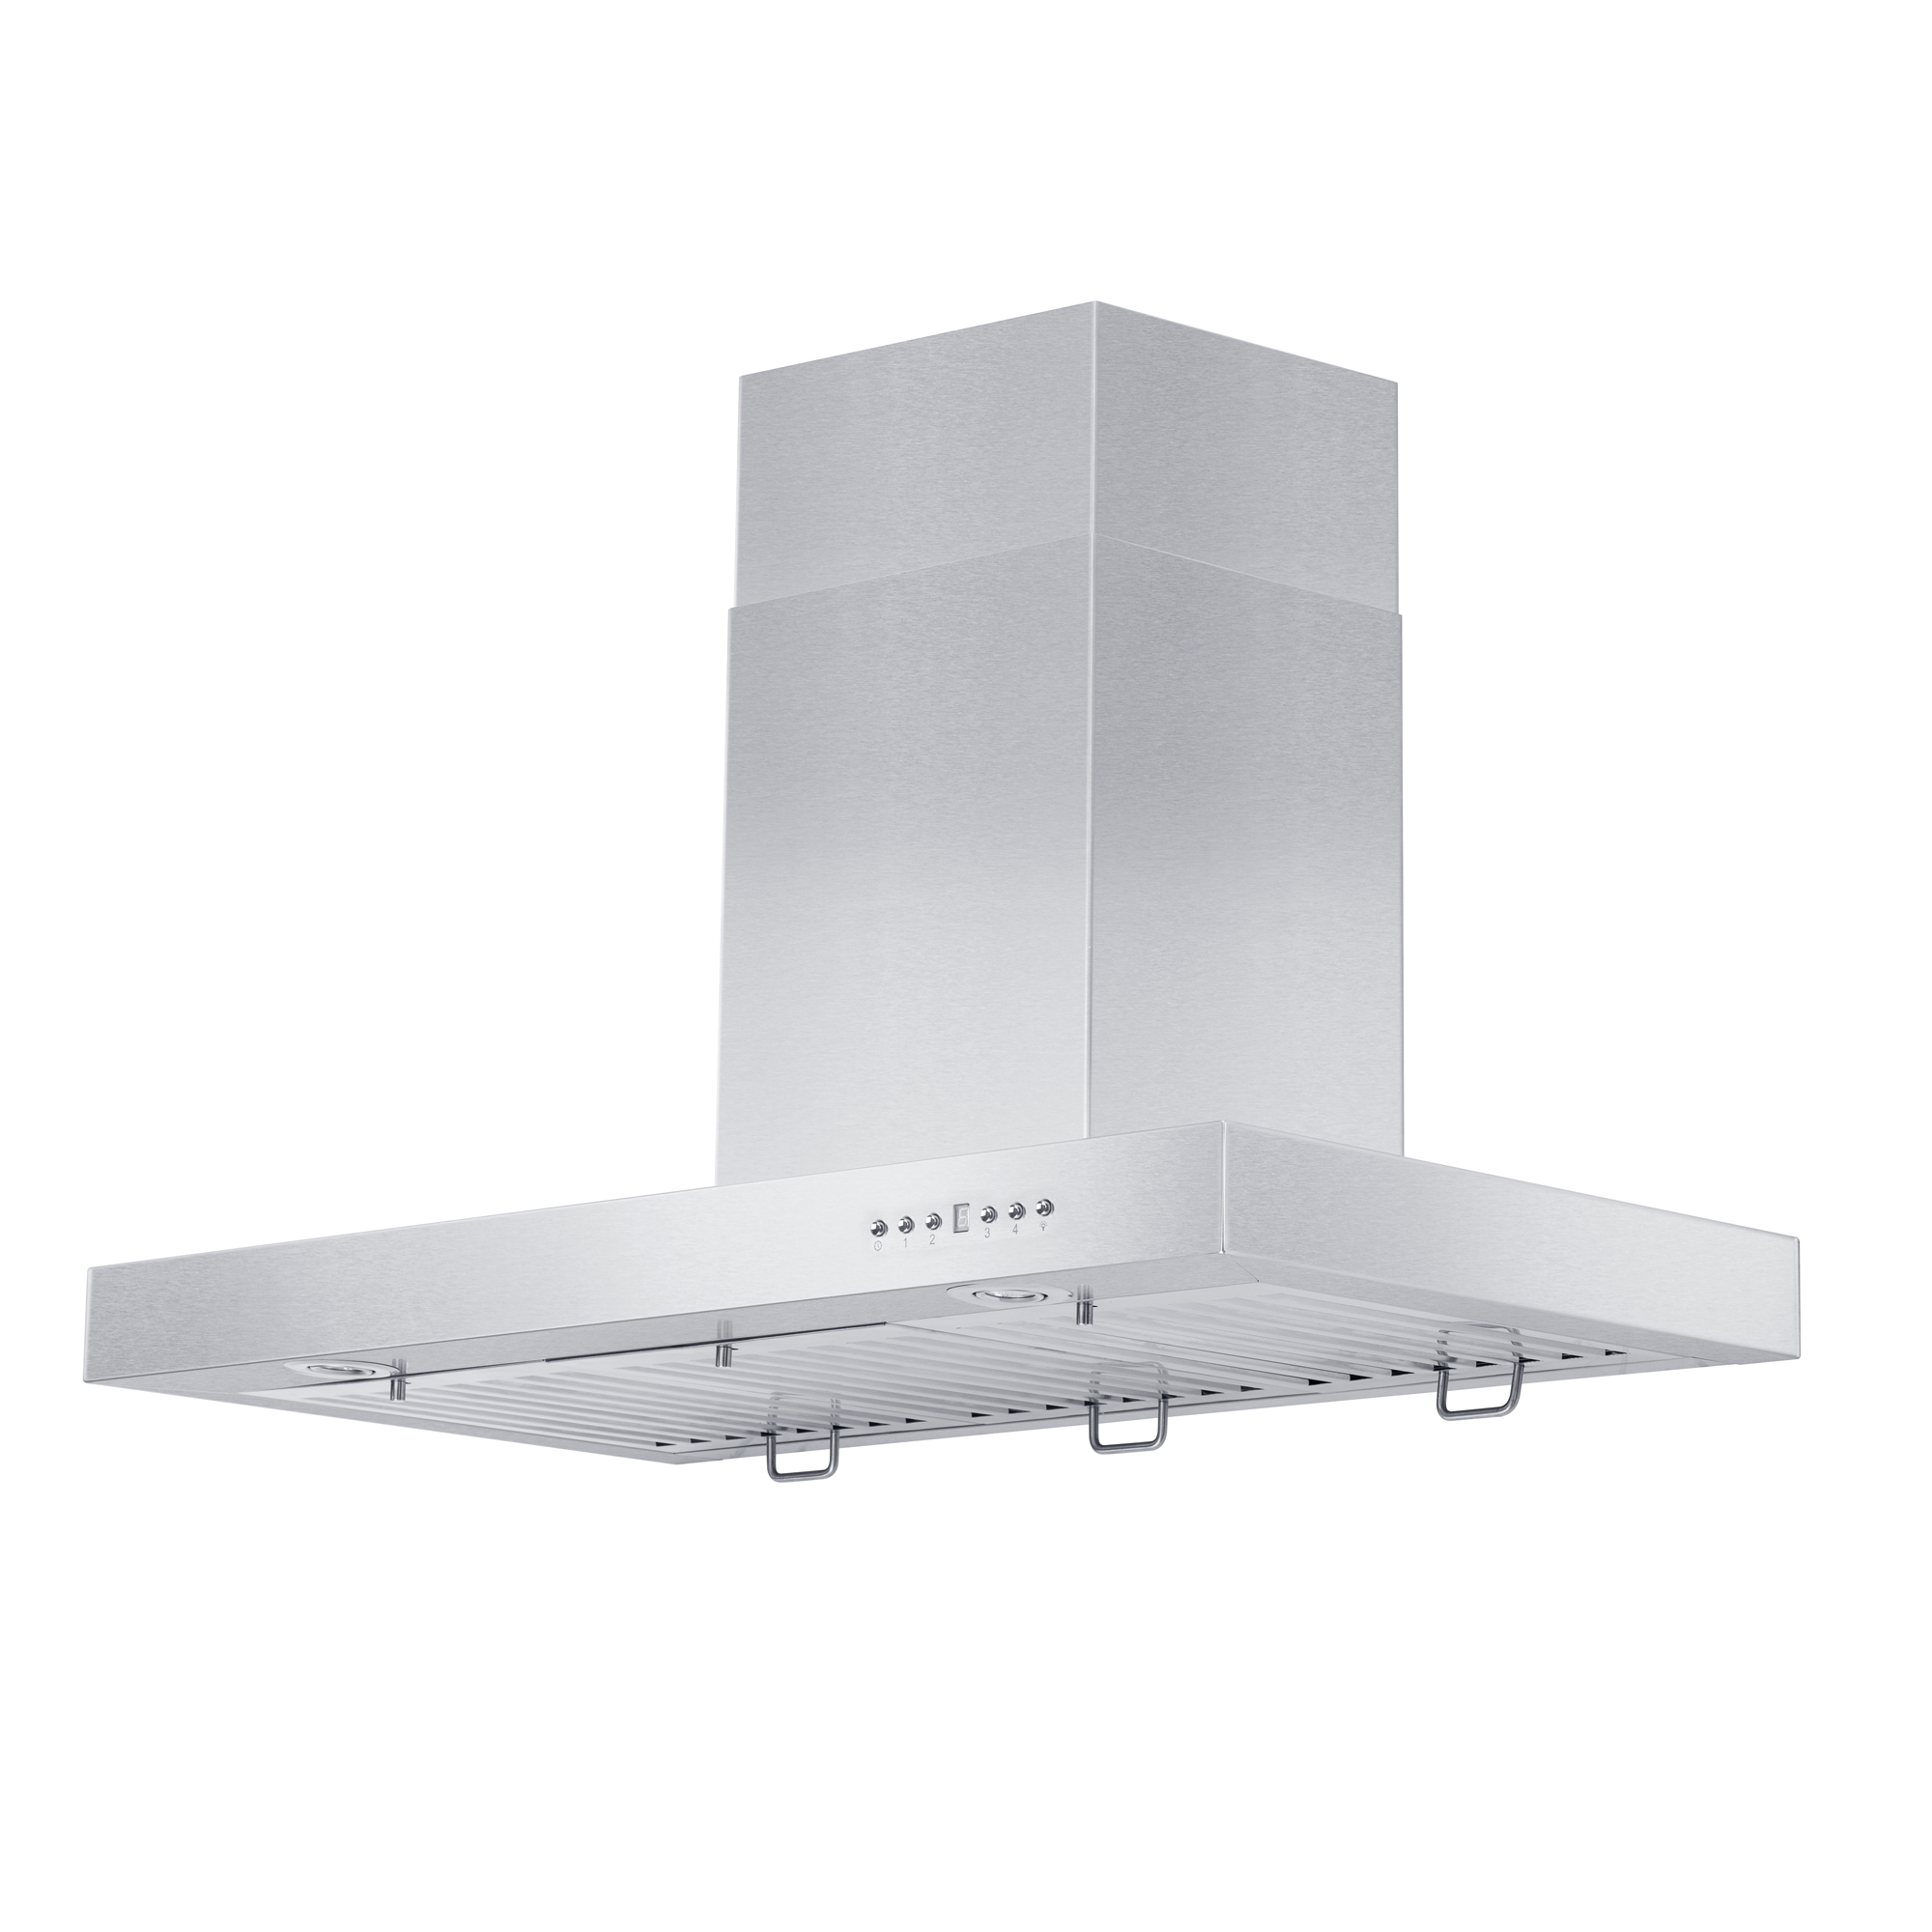 zline-stainless-steel-wall-mounted-range-hood-KE-new-angle-under.jpg